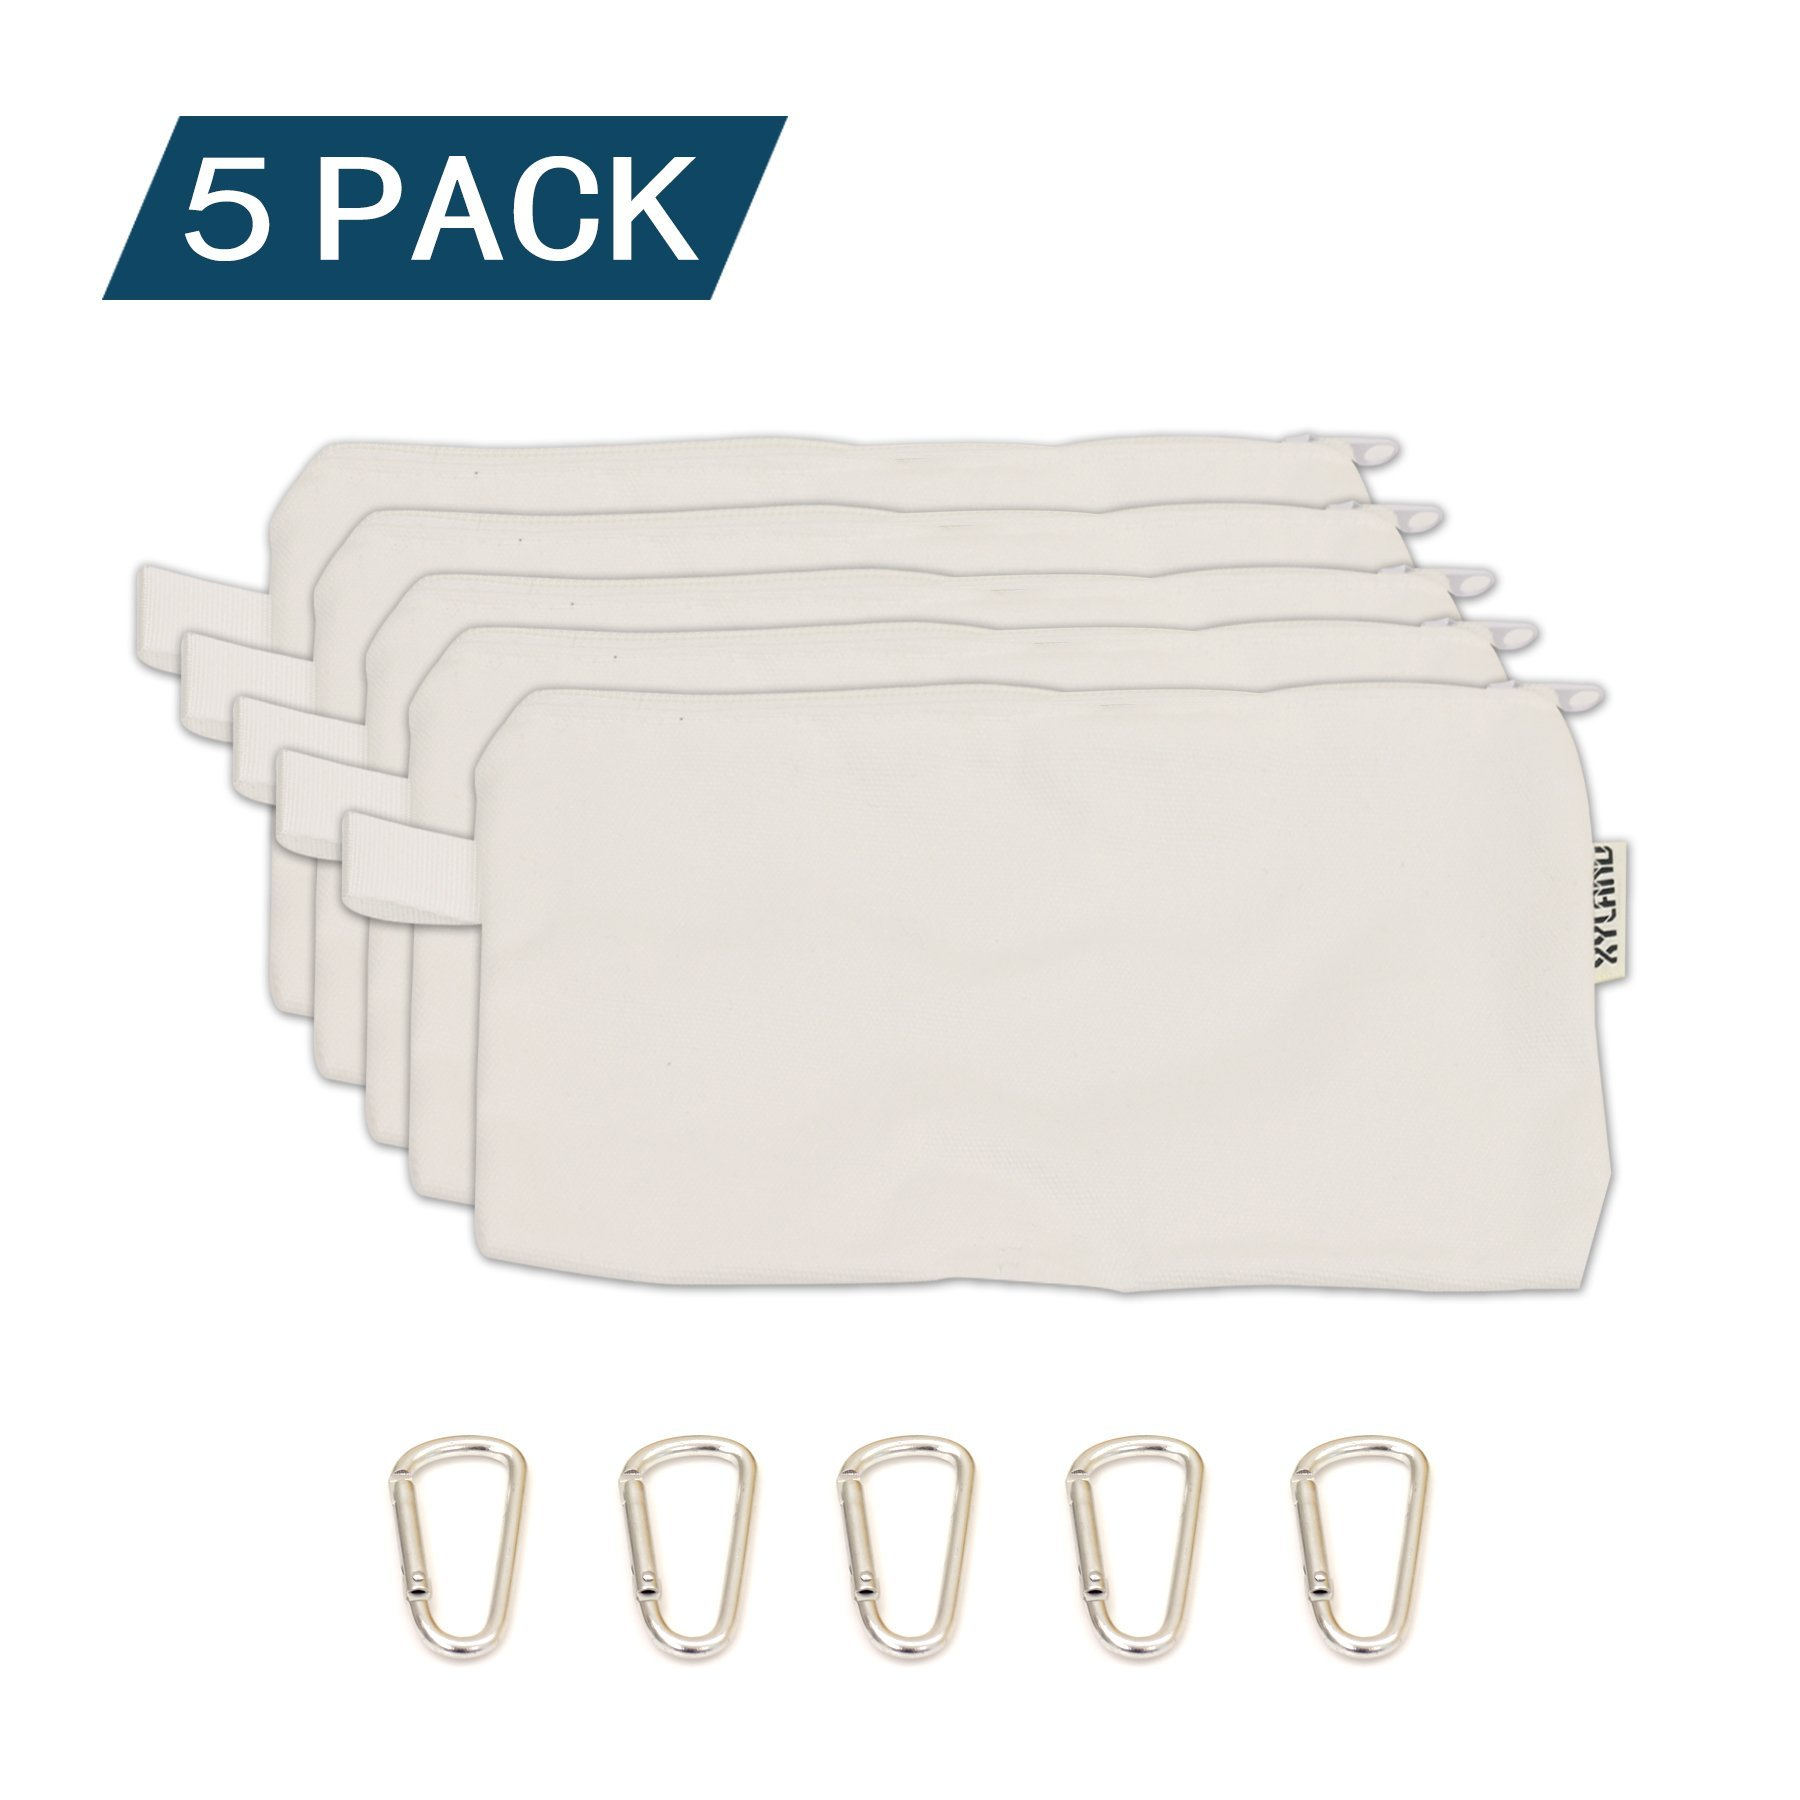 XYLand 100% Cotton Canvas Zipper Tool Pouch 5 Pack,Utility Organization Bags, Heavy Duty Metal Zipper and Carabiner White(5Pack HDMZ White)